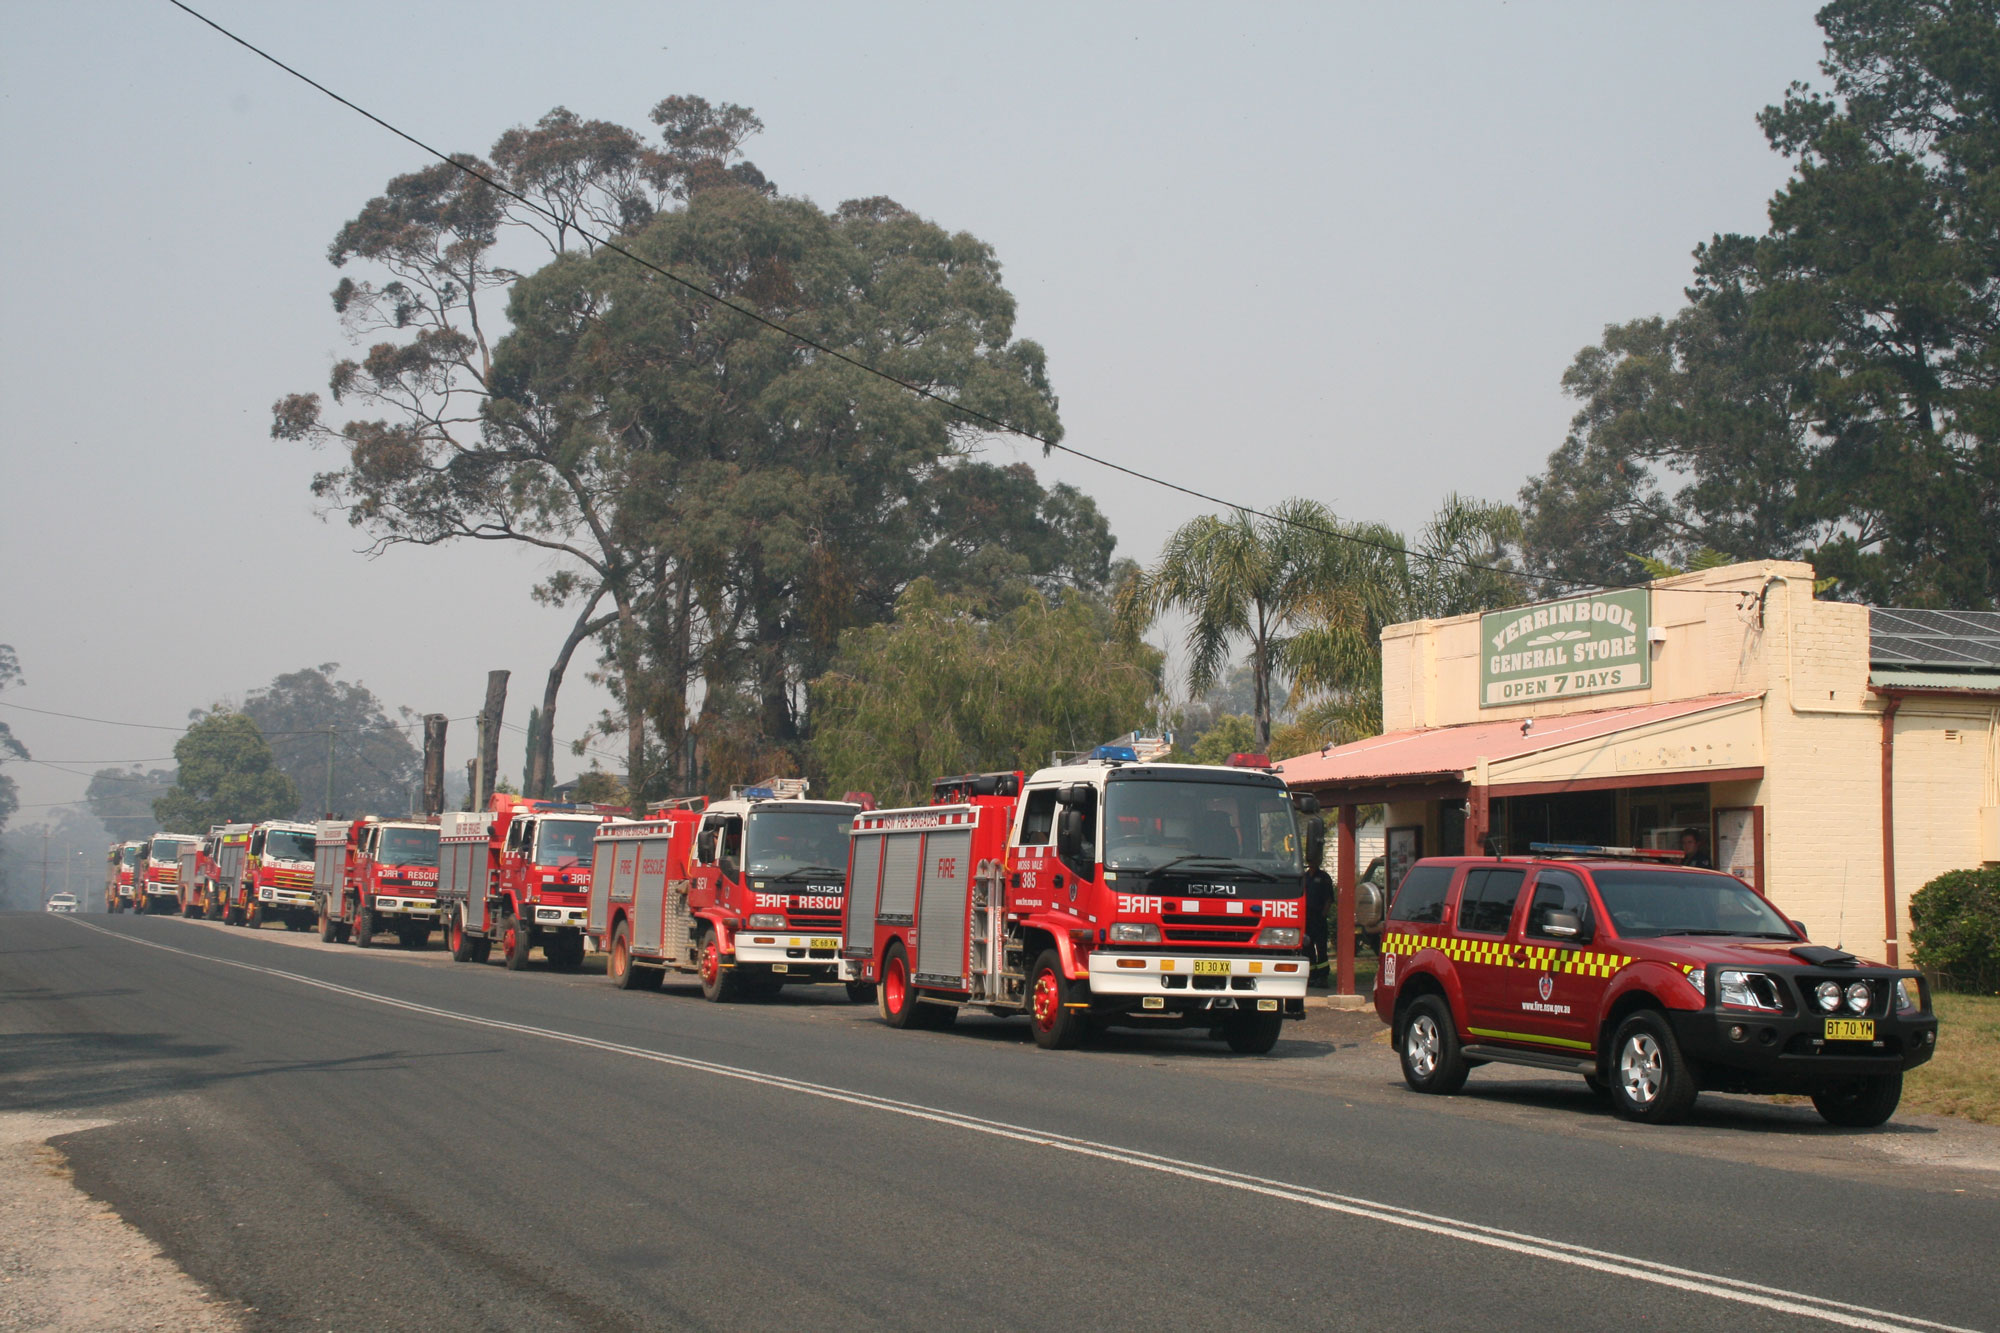 Firetrucks lined up on smokey street